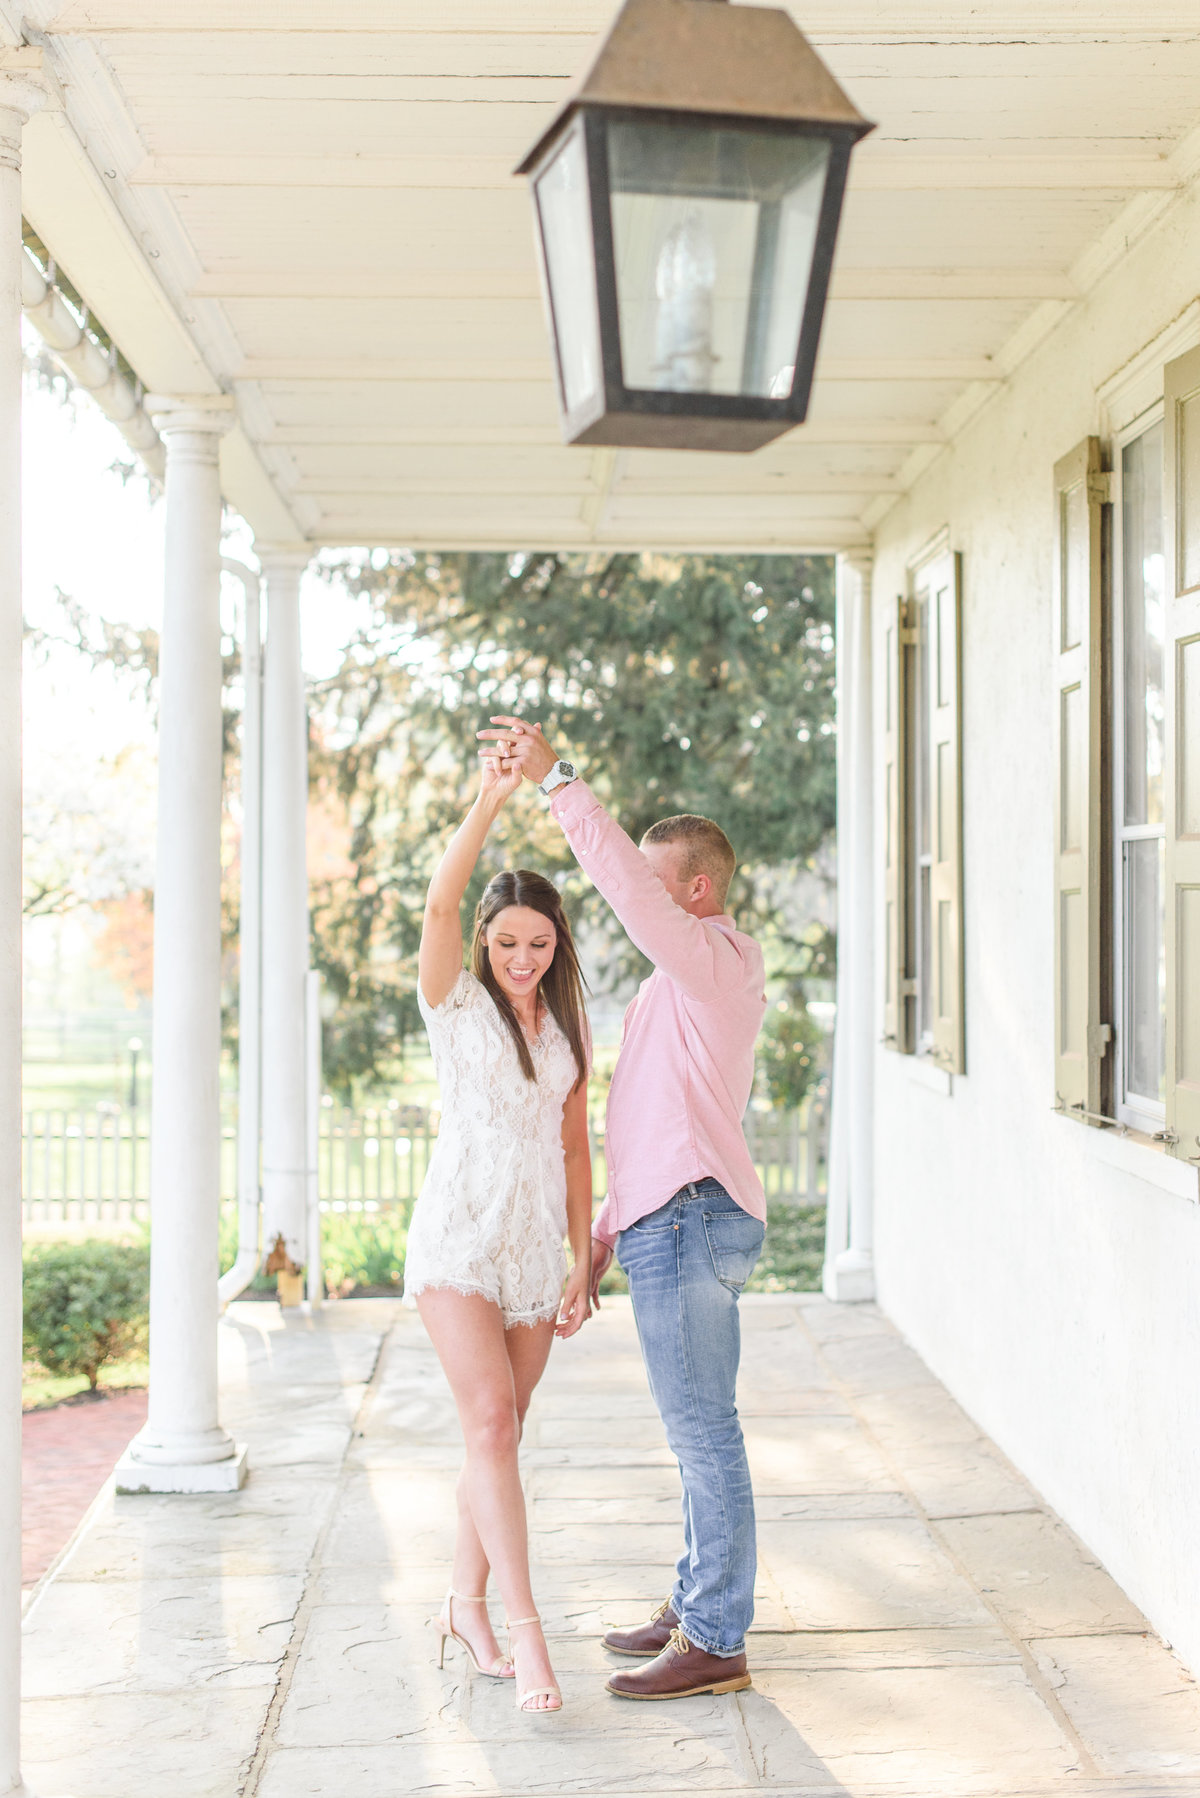 Olivia & Cody_ White Chimney's Engagement session_ Olivia Rae Photography-65